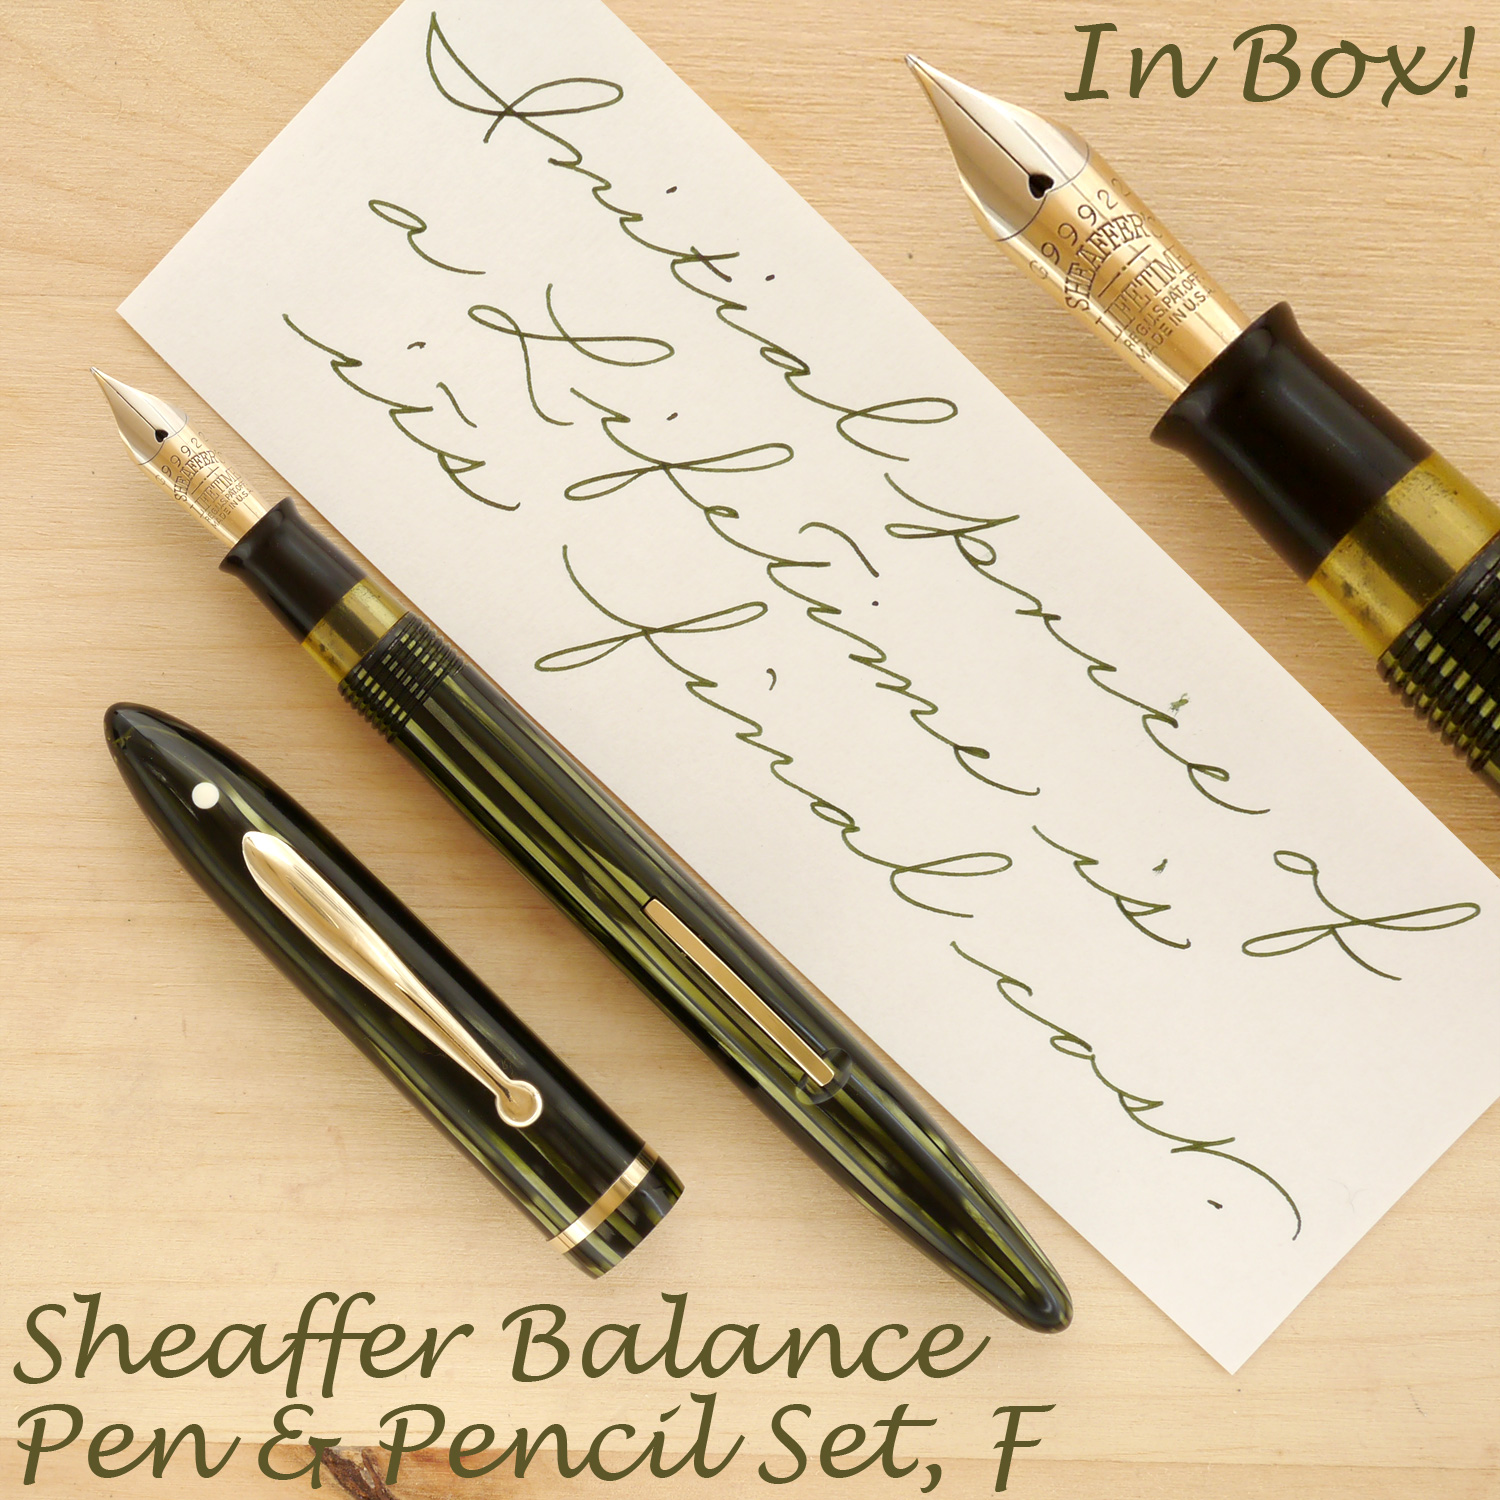 Sheaffer Balance Pen and Pencil Set, Marine Green, F, uncapped